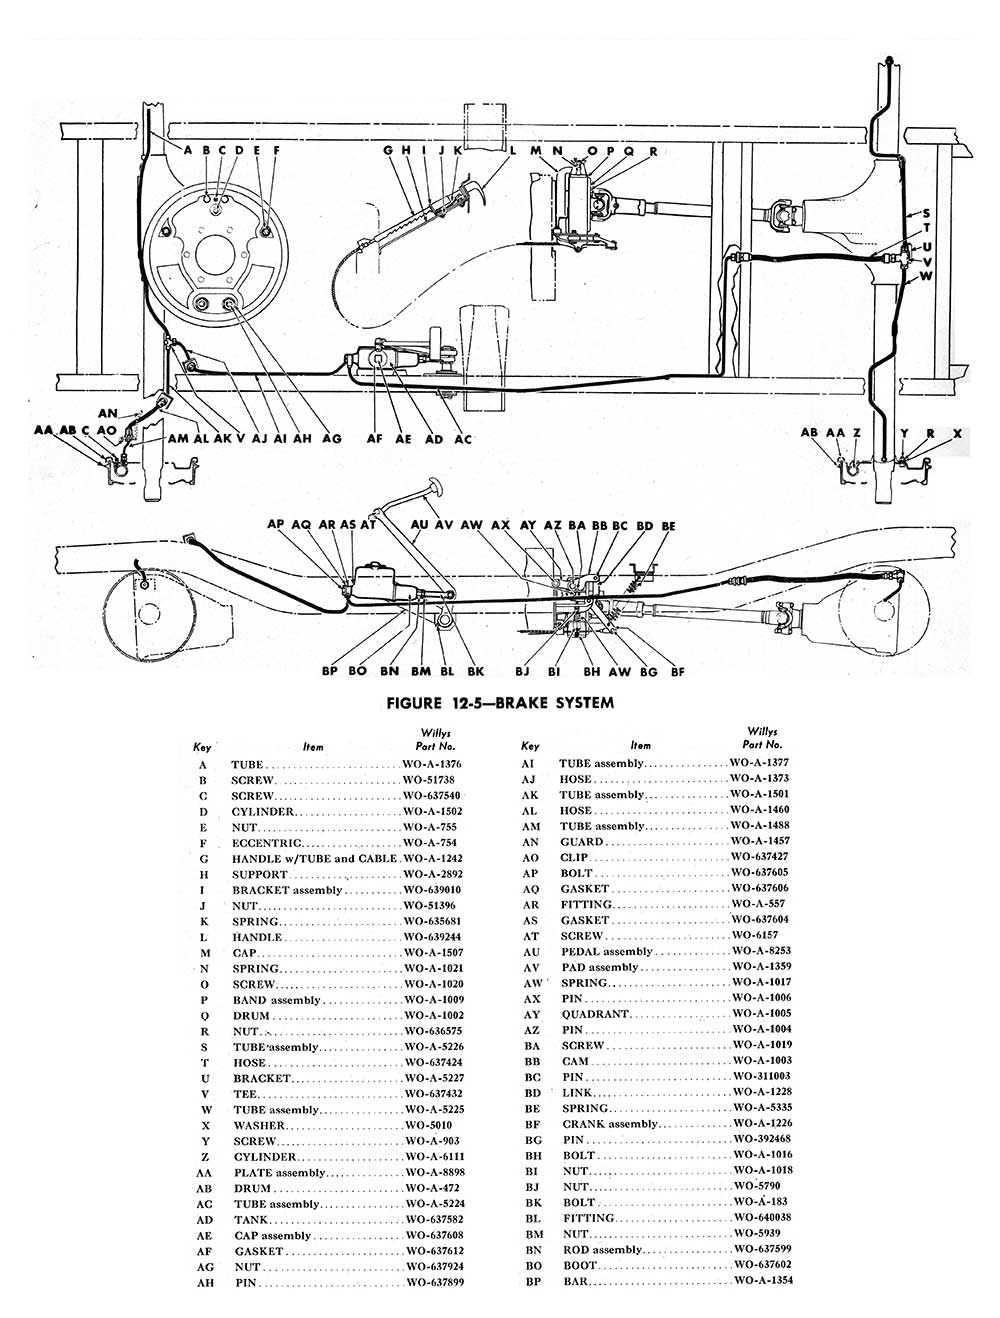 Jeepster Engine Wiring Diagram. Diagram. Auto Wiring Diagram